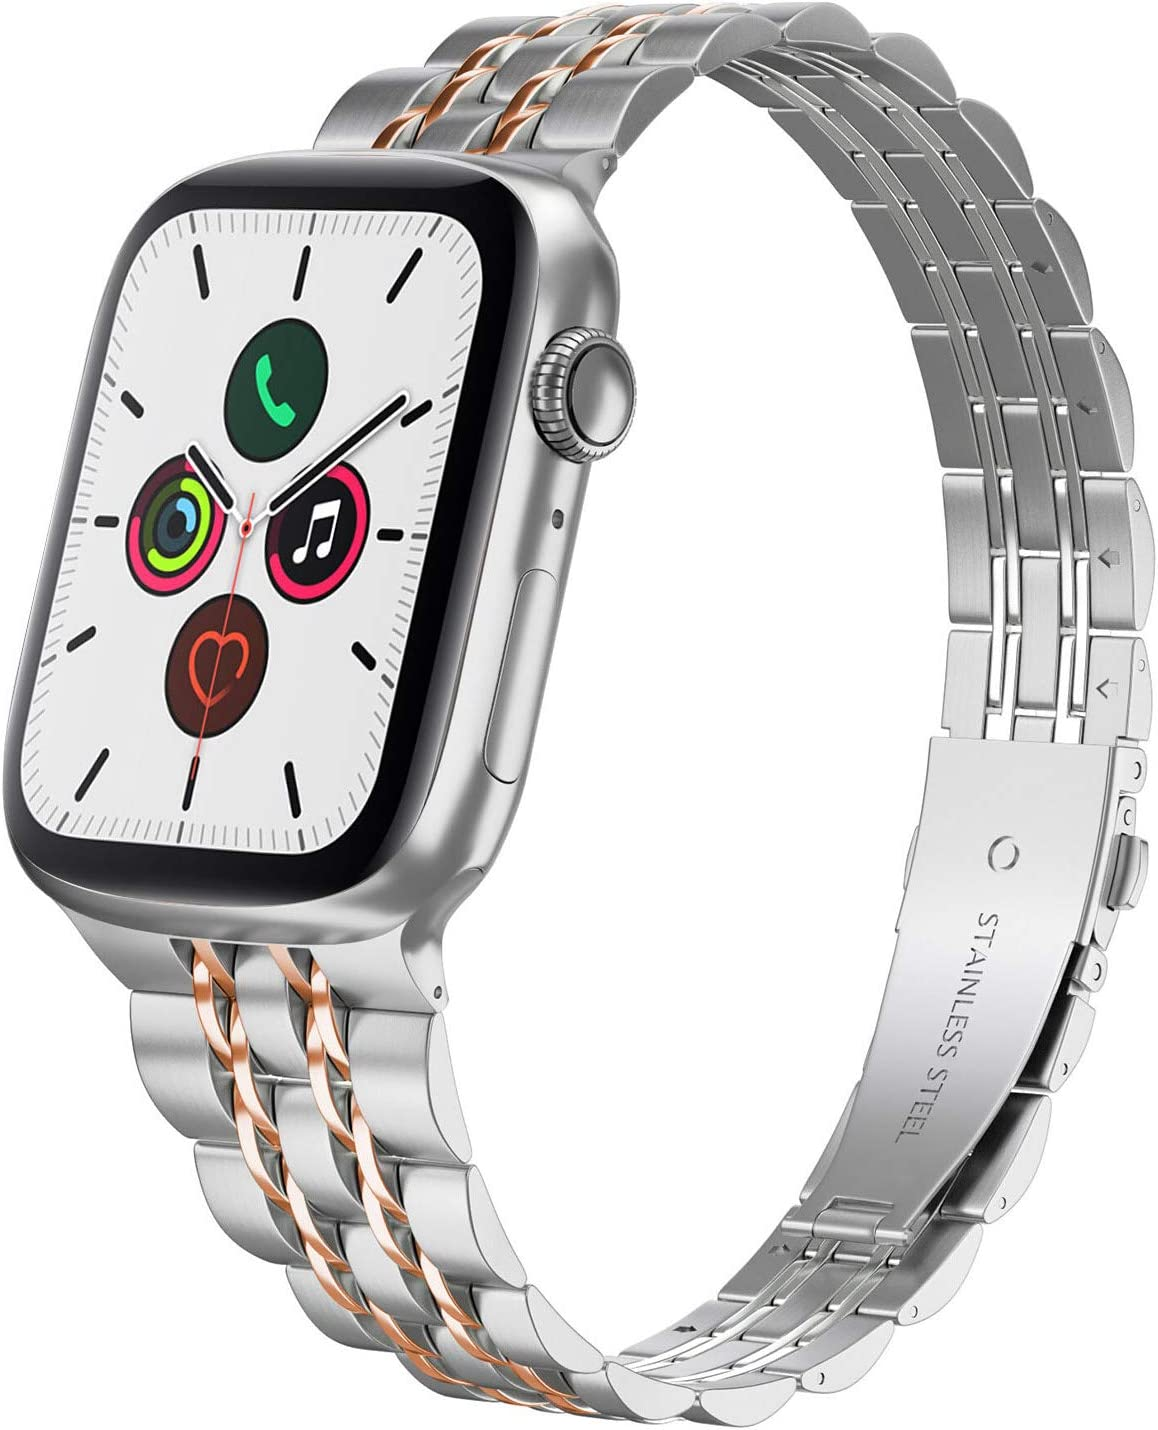 Compatible with Apple Watch Band 40mm Series 6 5 4 38mm Series 3 2 1, Yisdo Iwatch Bracelet Link Band Iphone Watch Band Ultra Thin Stainless Steel Metal Women (38mm/40mm, Silver with Rose Gold)